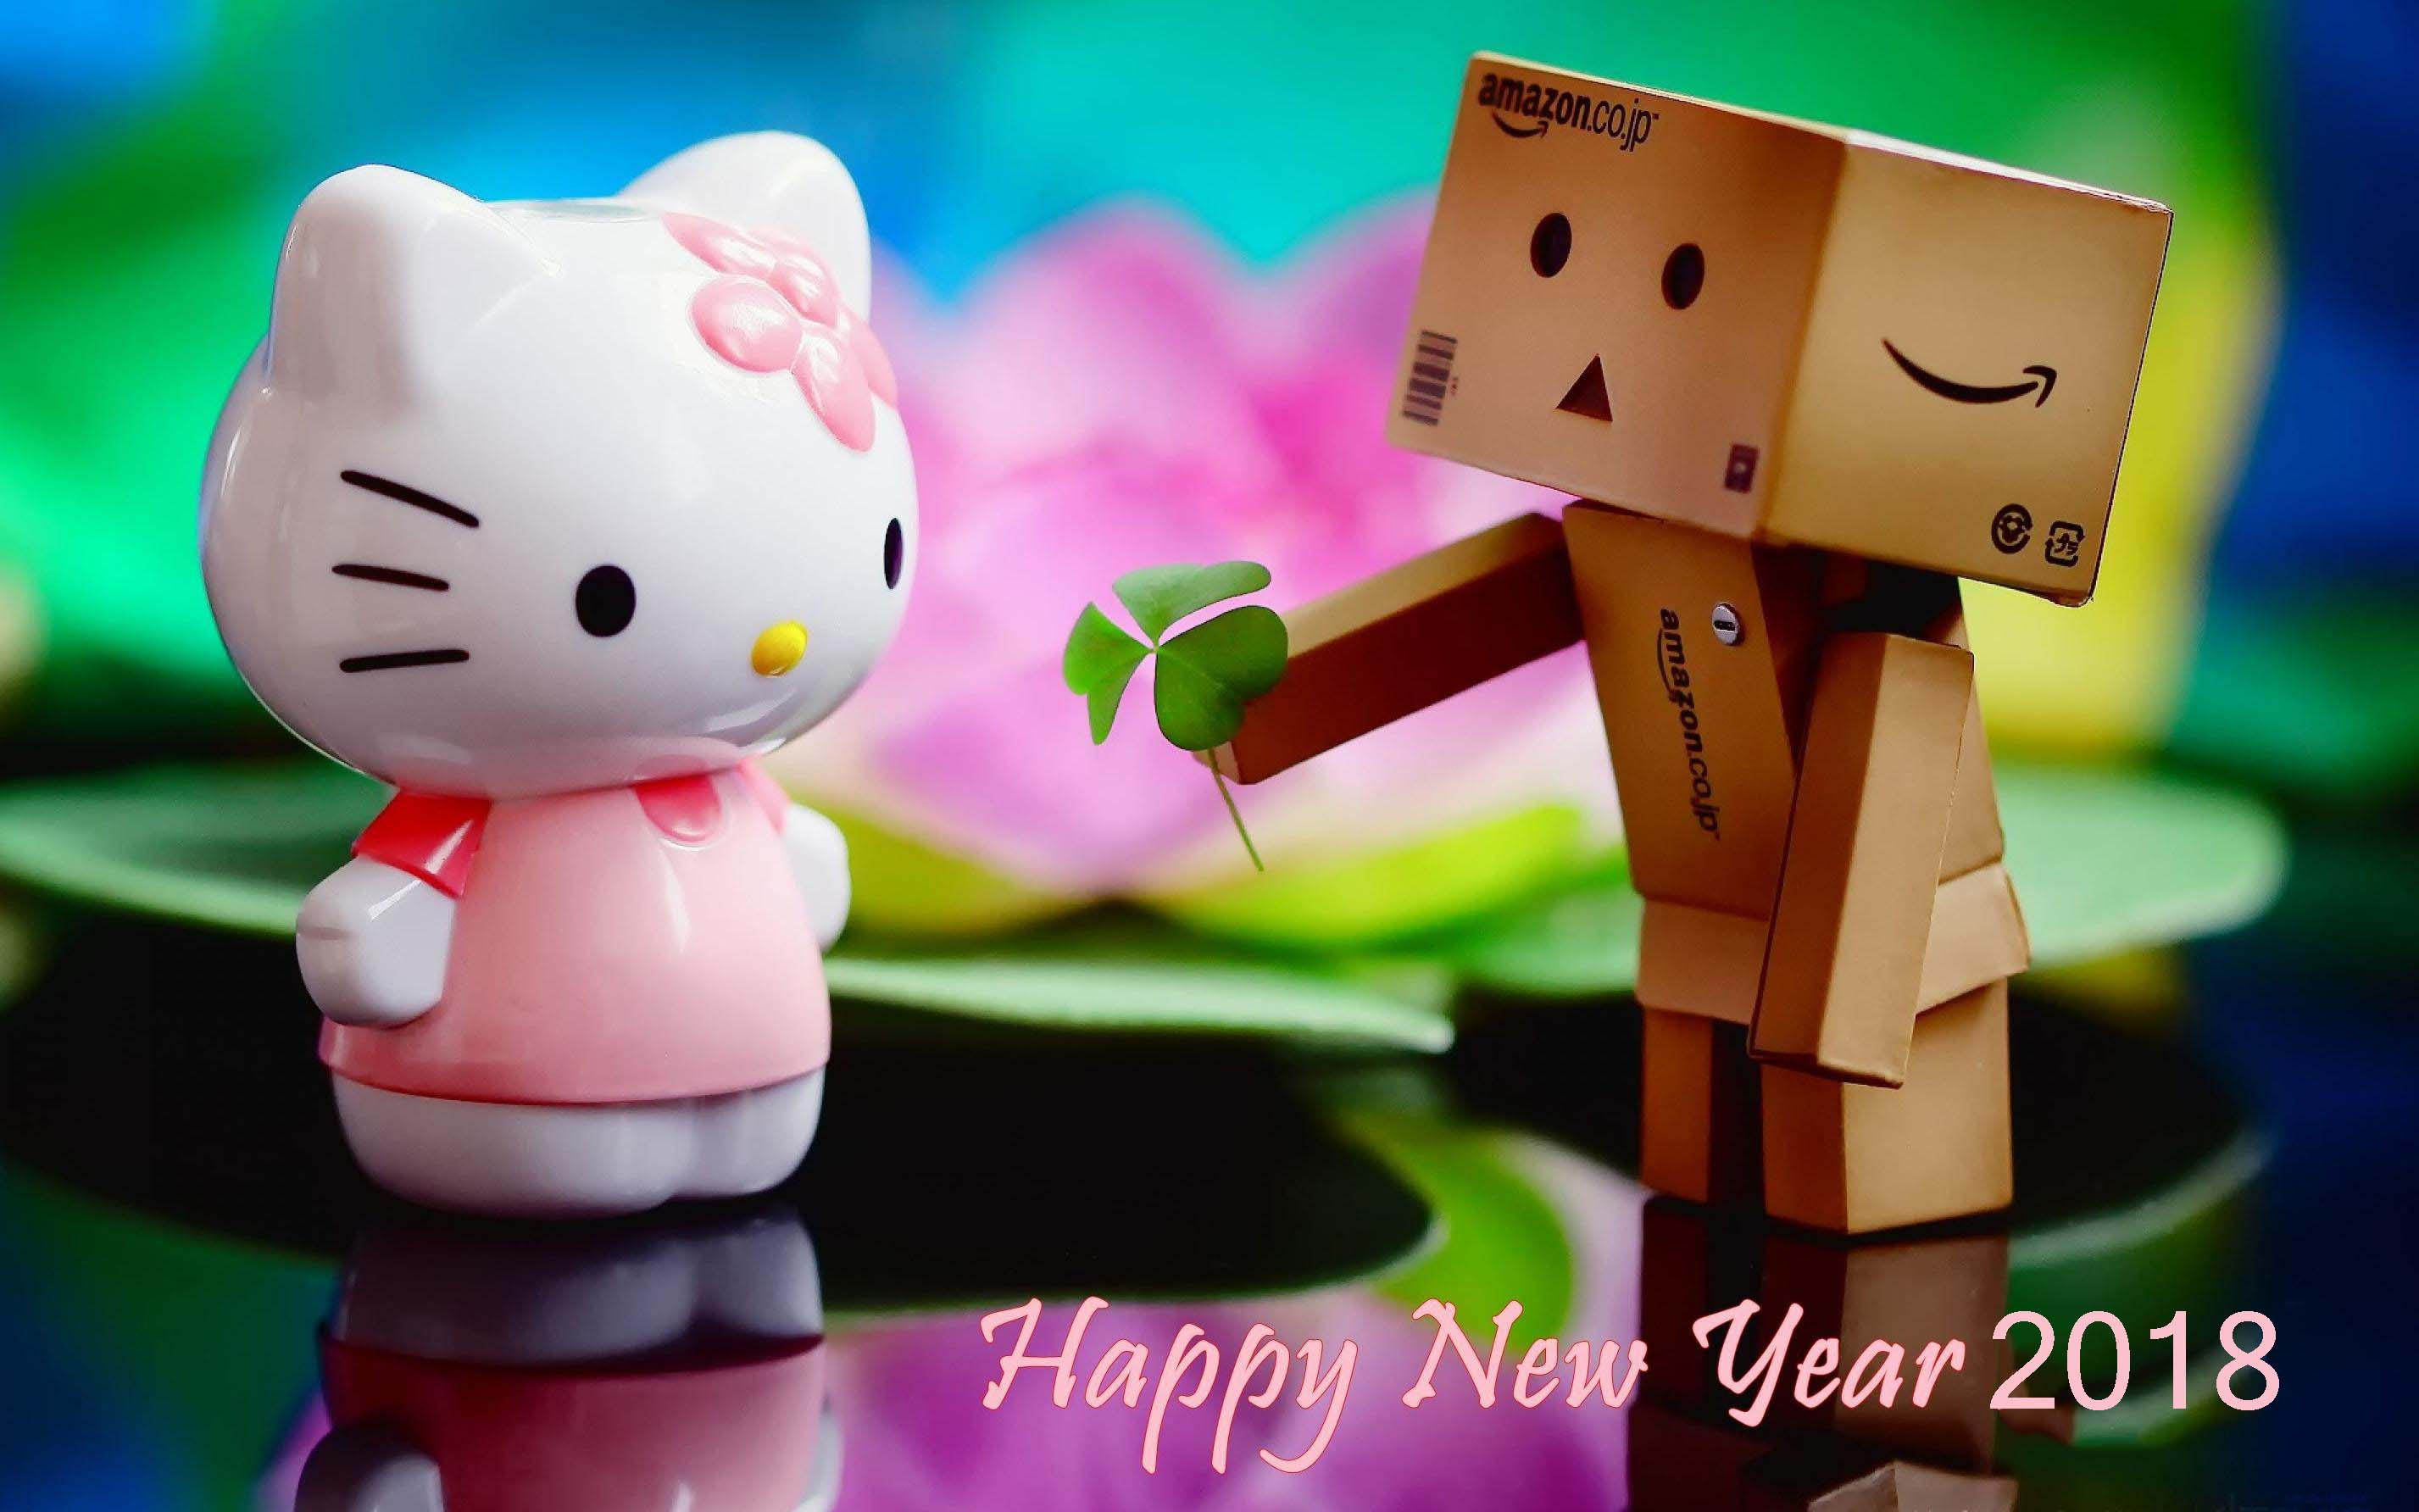 high quality free pleasant hd wish you happy new year wallpapers